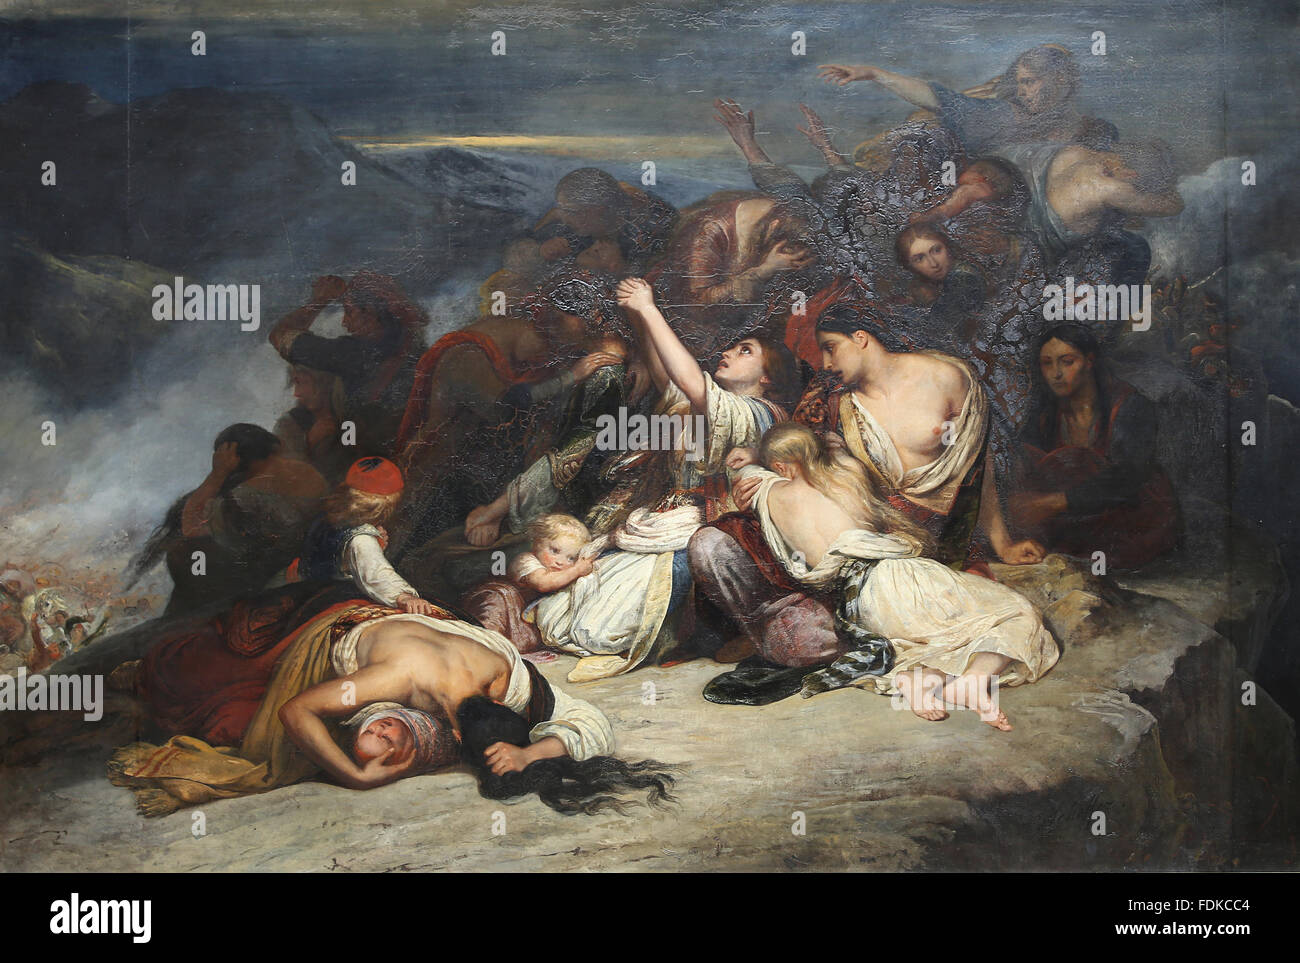 By Ary Scheffer (1795-1858). Heroic suicide of Souliote women. Souliote  wars, 1803.